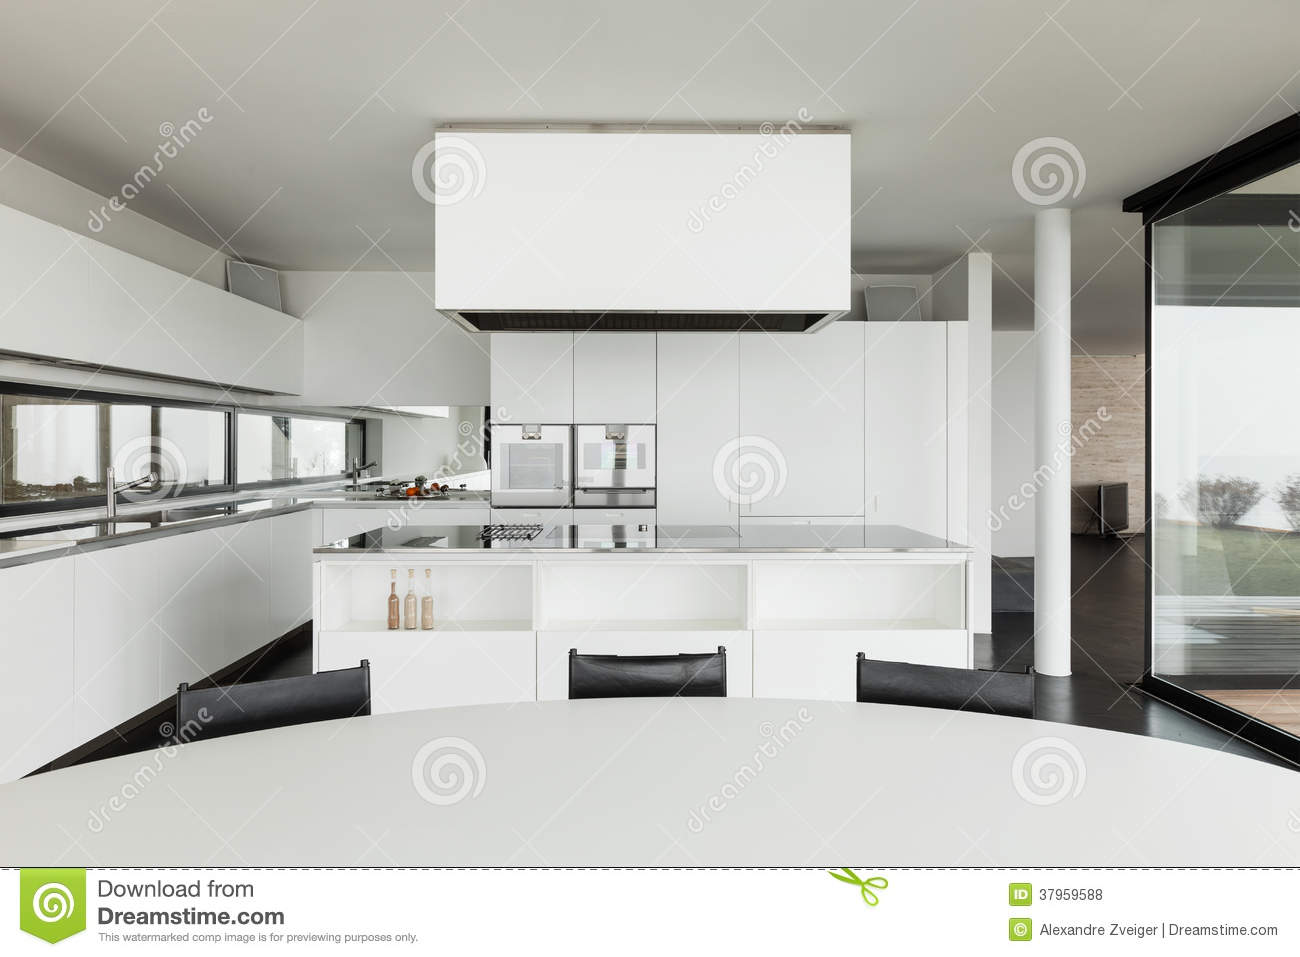 Architecture int rieur d 39 une villa moderne photos libres for Interieur villa moderne